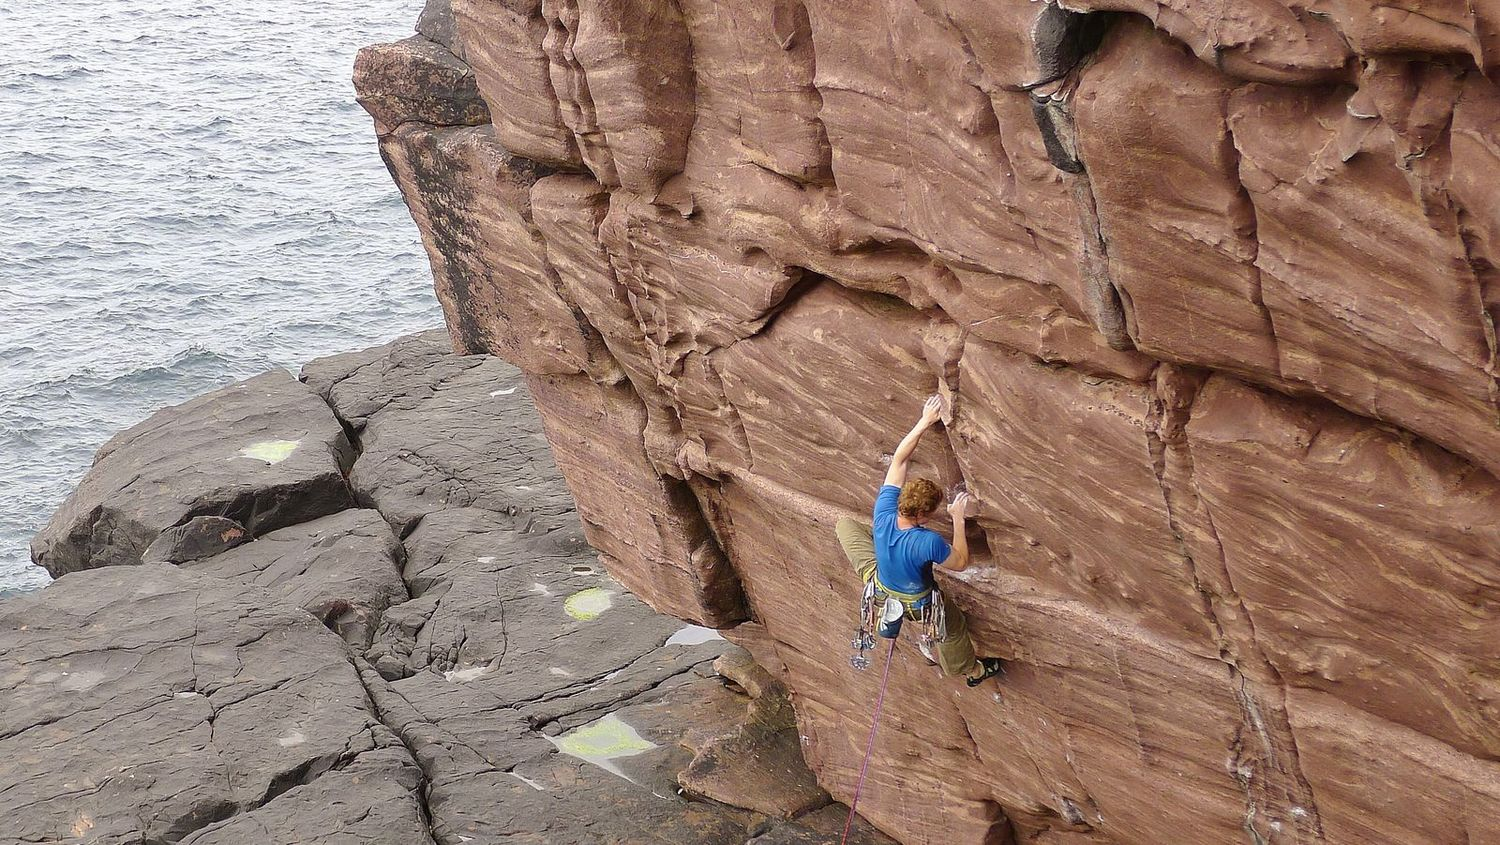 Calum was using the ropes for trad climbing on some sandstone sea cliffs at Reiff